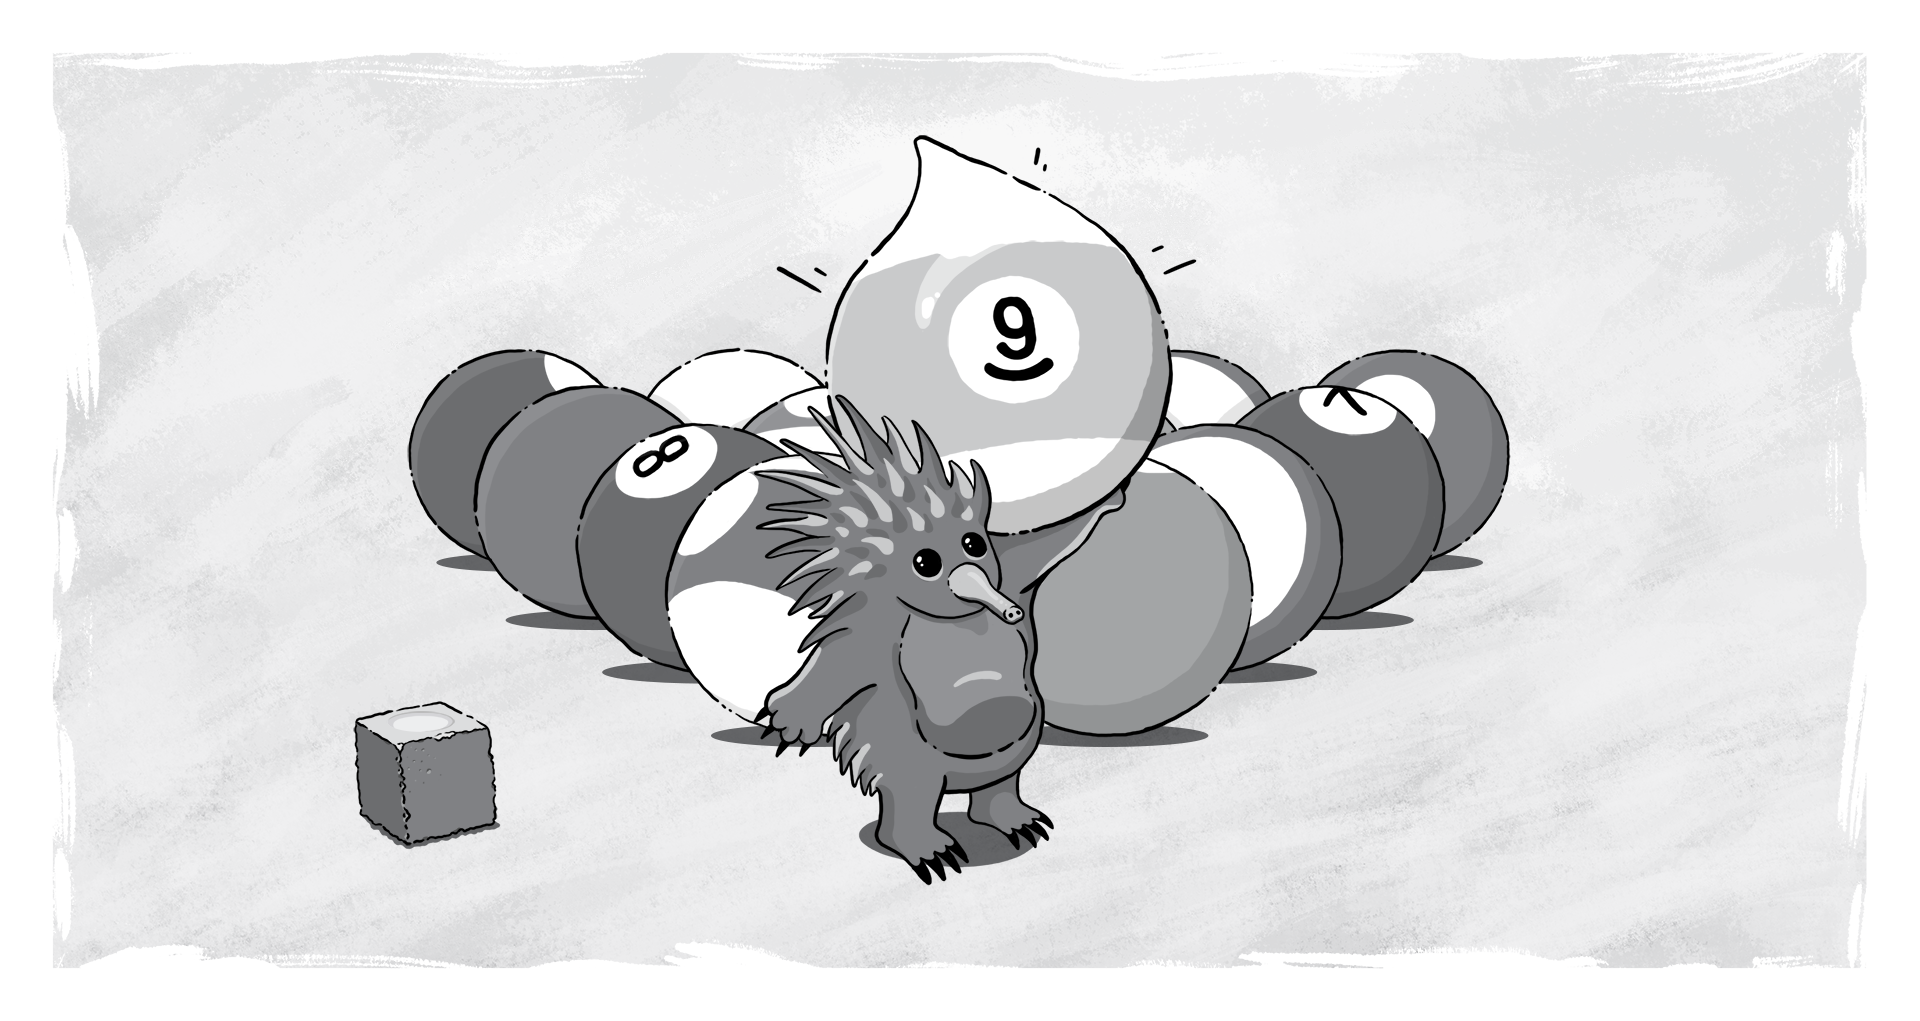 Echidna with Drupal 9 ball from a game of pool